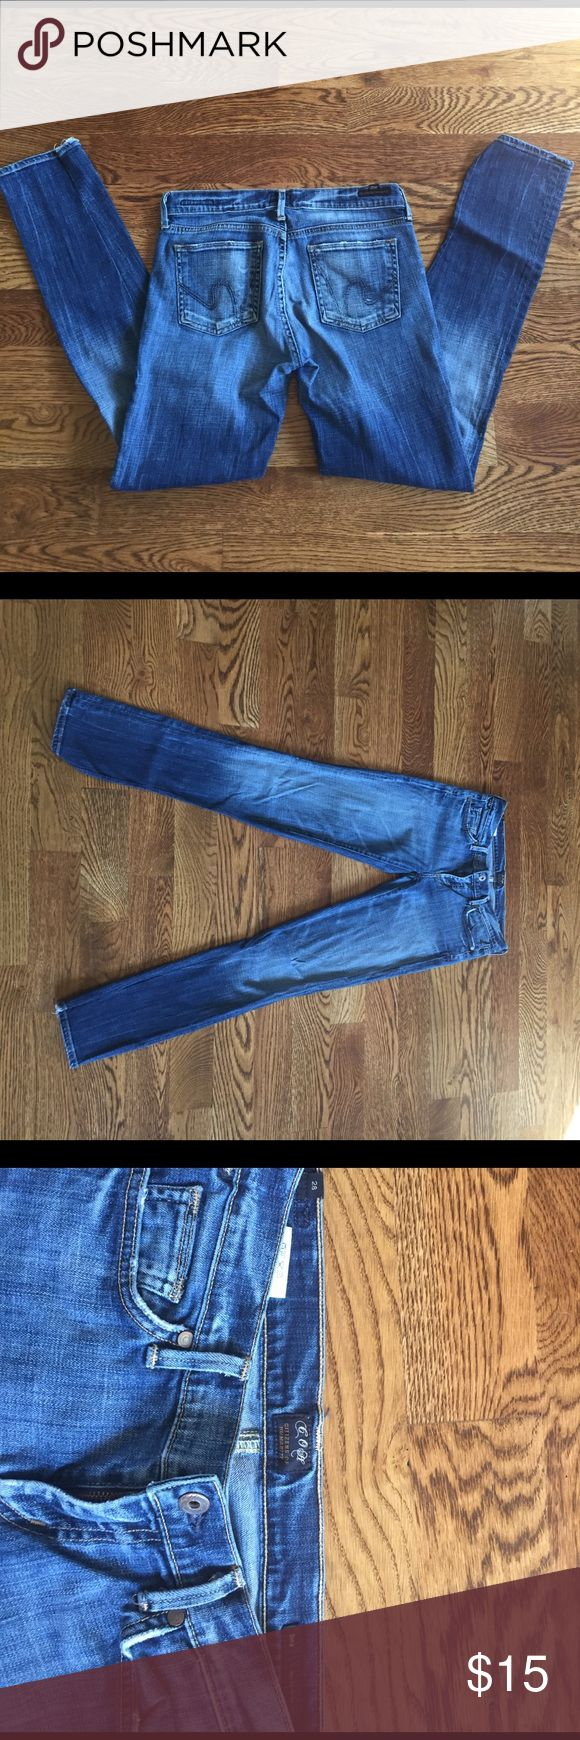 Citizens of Humanity Dita Petite Jeans Citizens of Humanity Dita Petite Jeans. Used to be bootcut, but I had them professionally pegged into skinny jeans. Perfectly distressed. Citizens of Humanity Jeans Skinny